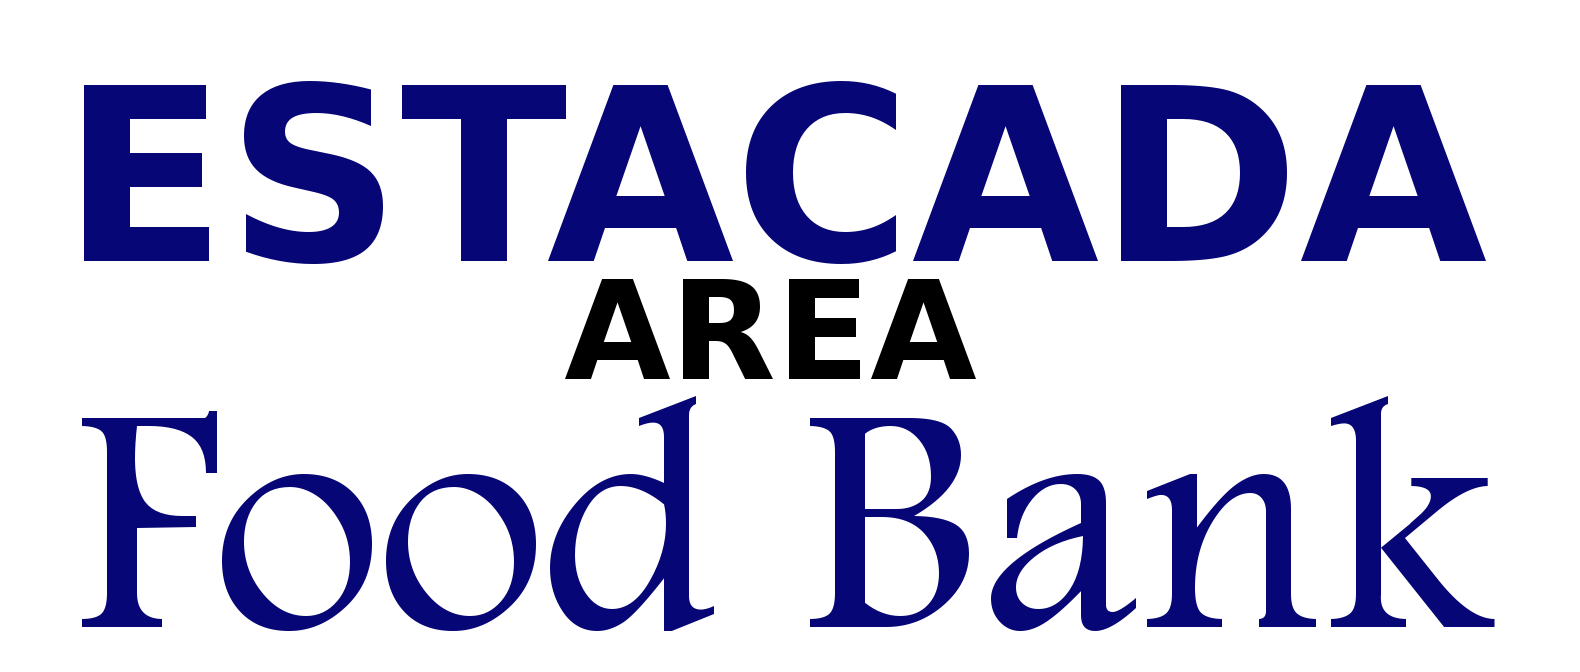 Estacada Area Food Bank